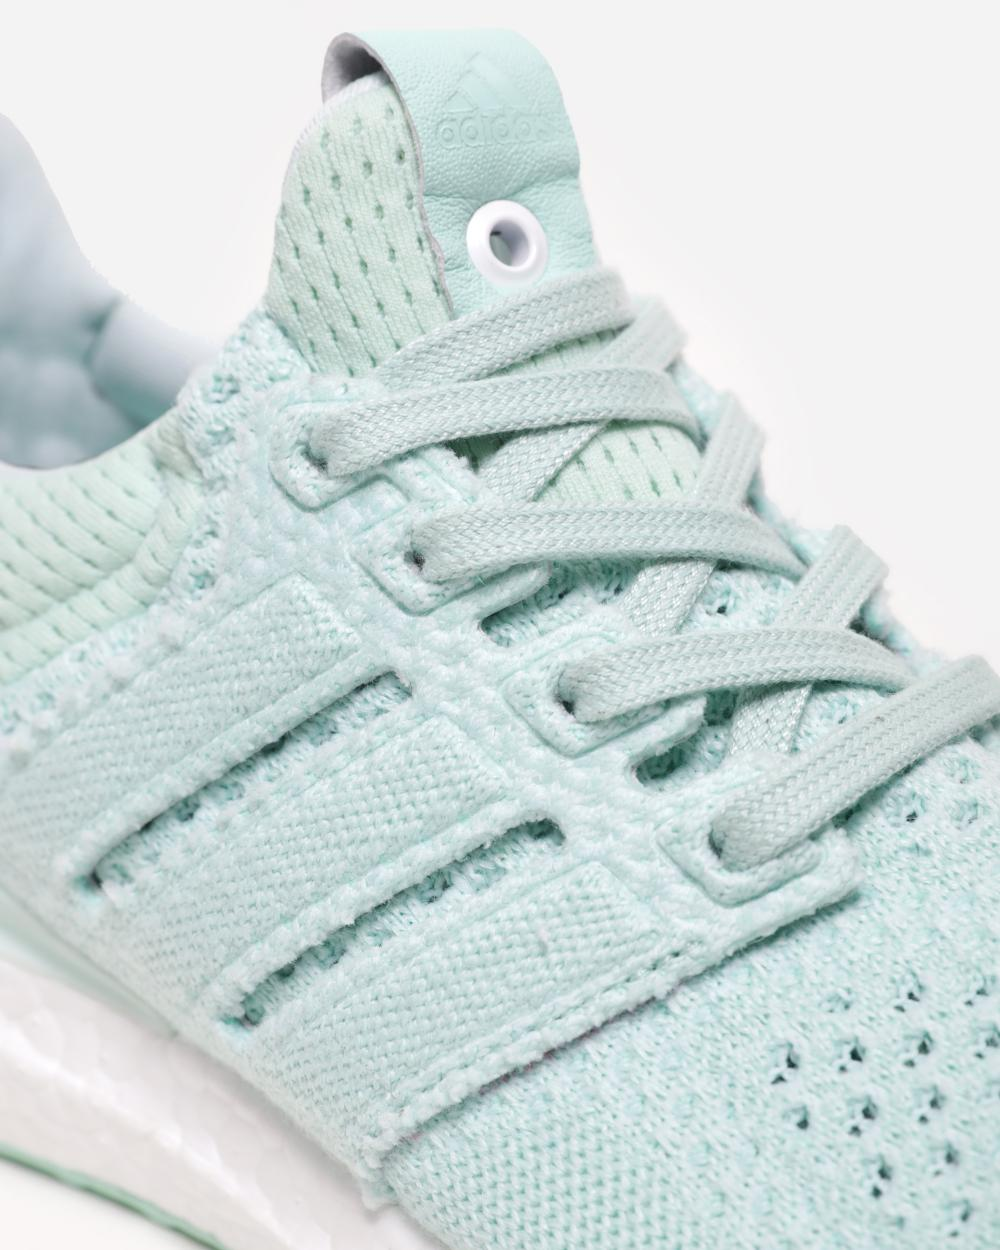 Naked Adidas Ultra Boost BB1141 Medial